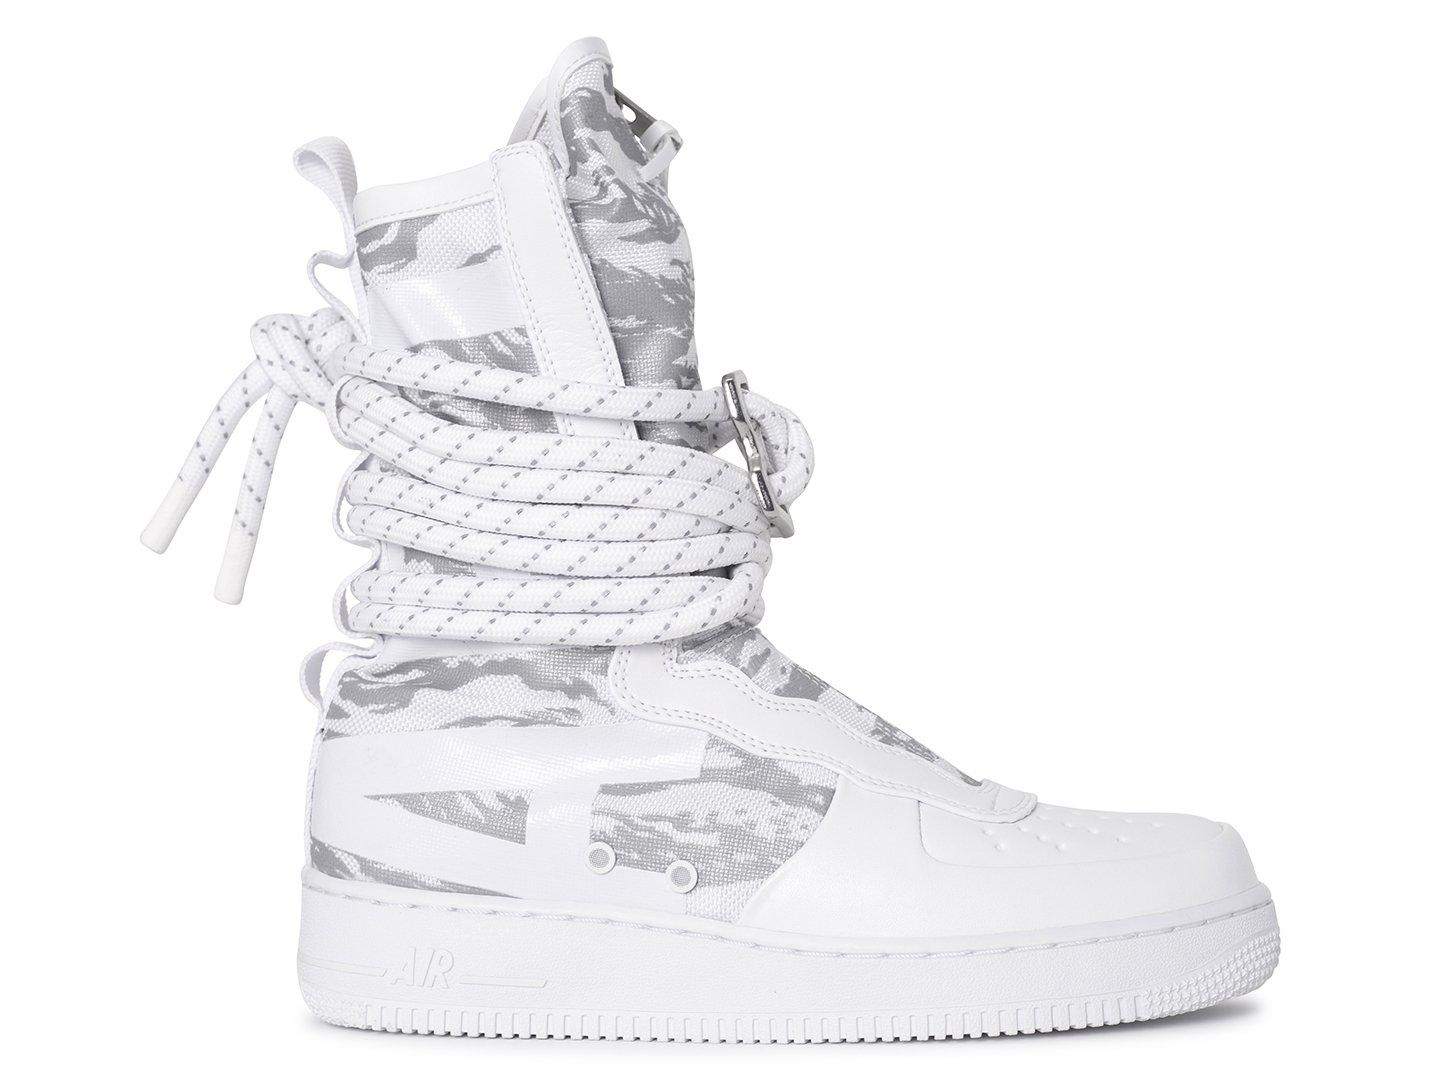 Nike Leather Sf Air Force 1 Hi Winter Boot in White | White (White ...